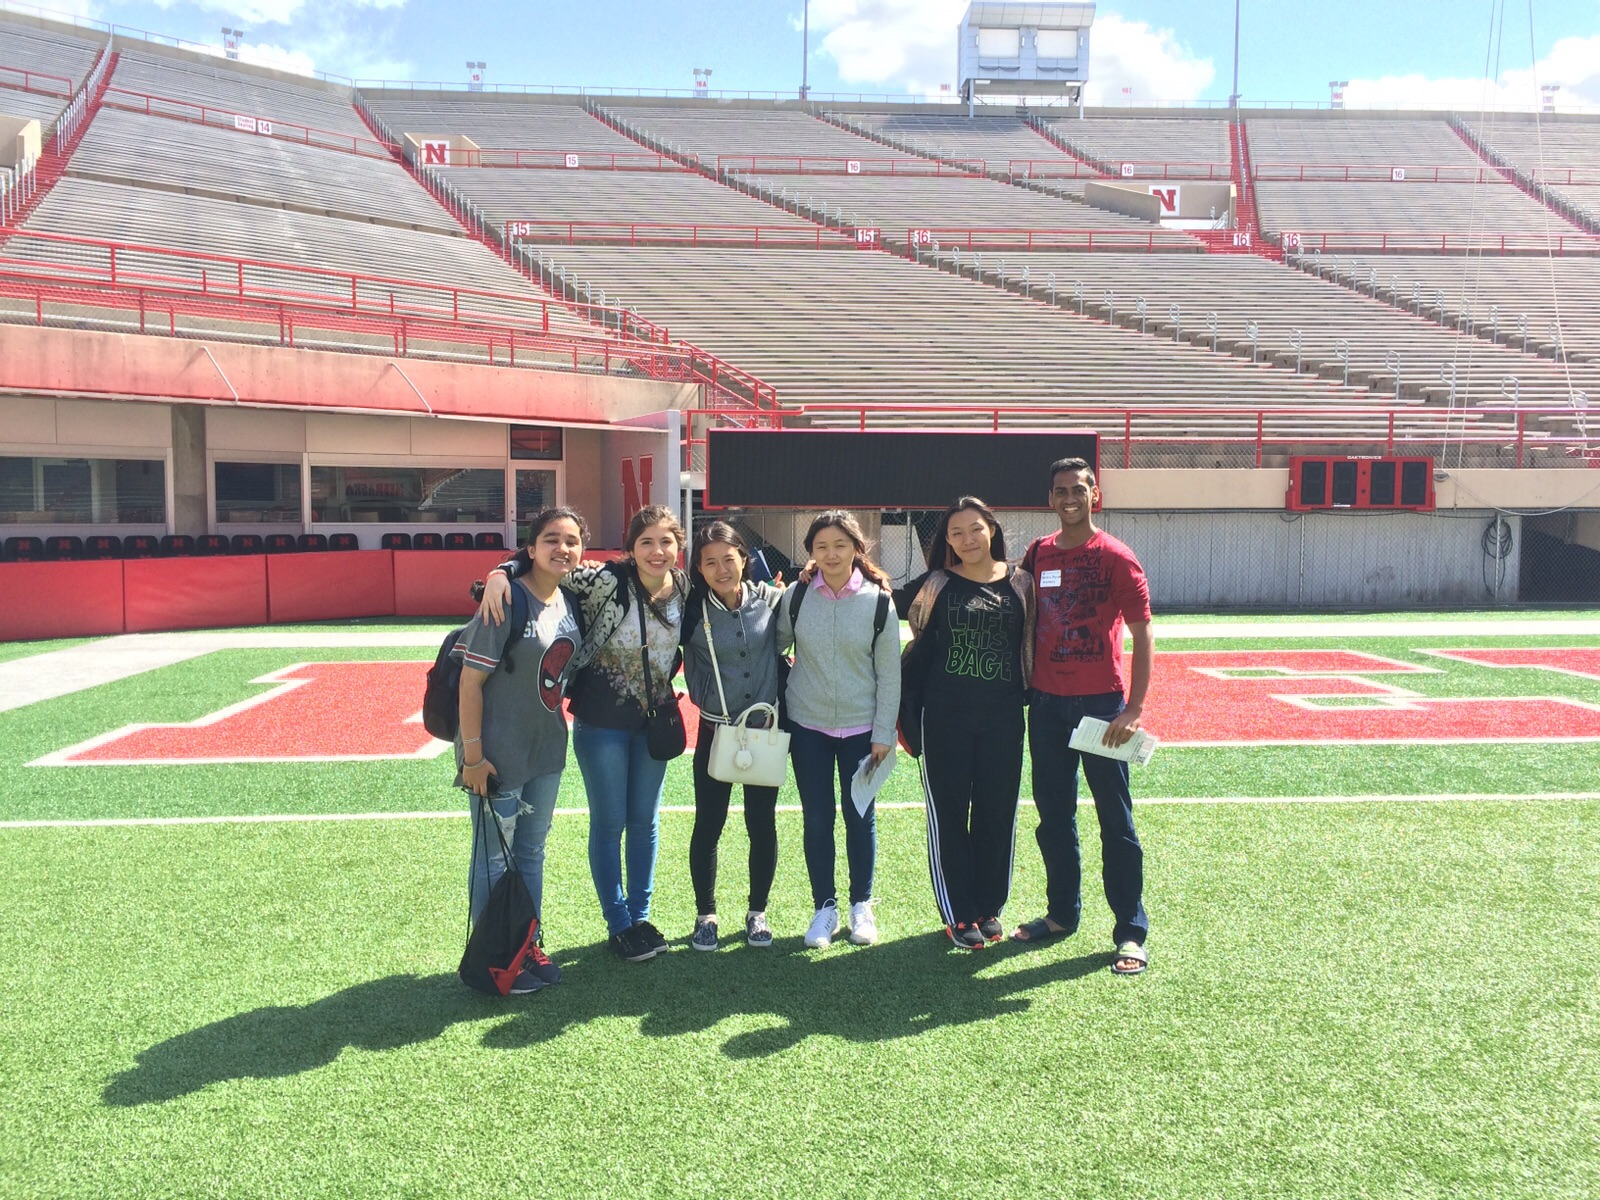 A group of new Fall 2015 international students who made a quick stop at the stadium during Undergraduate Orientation